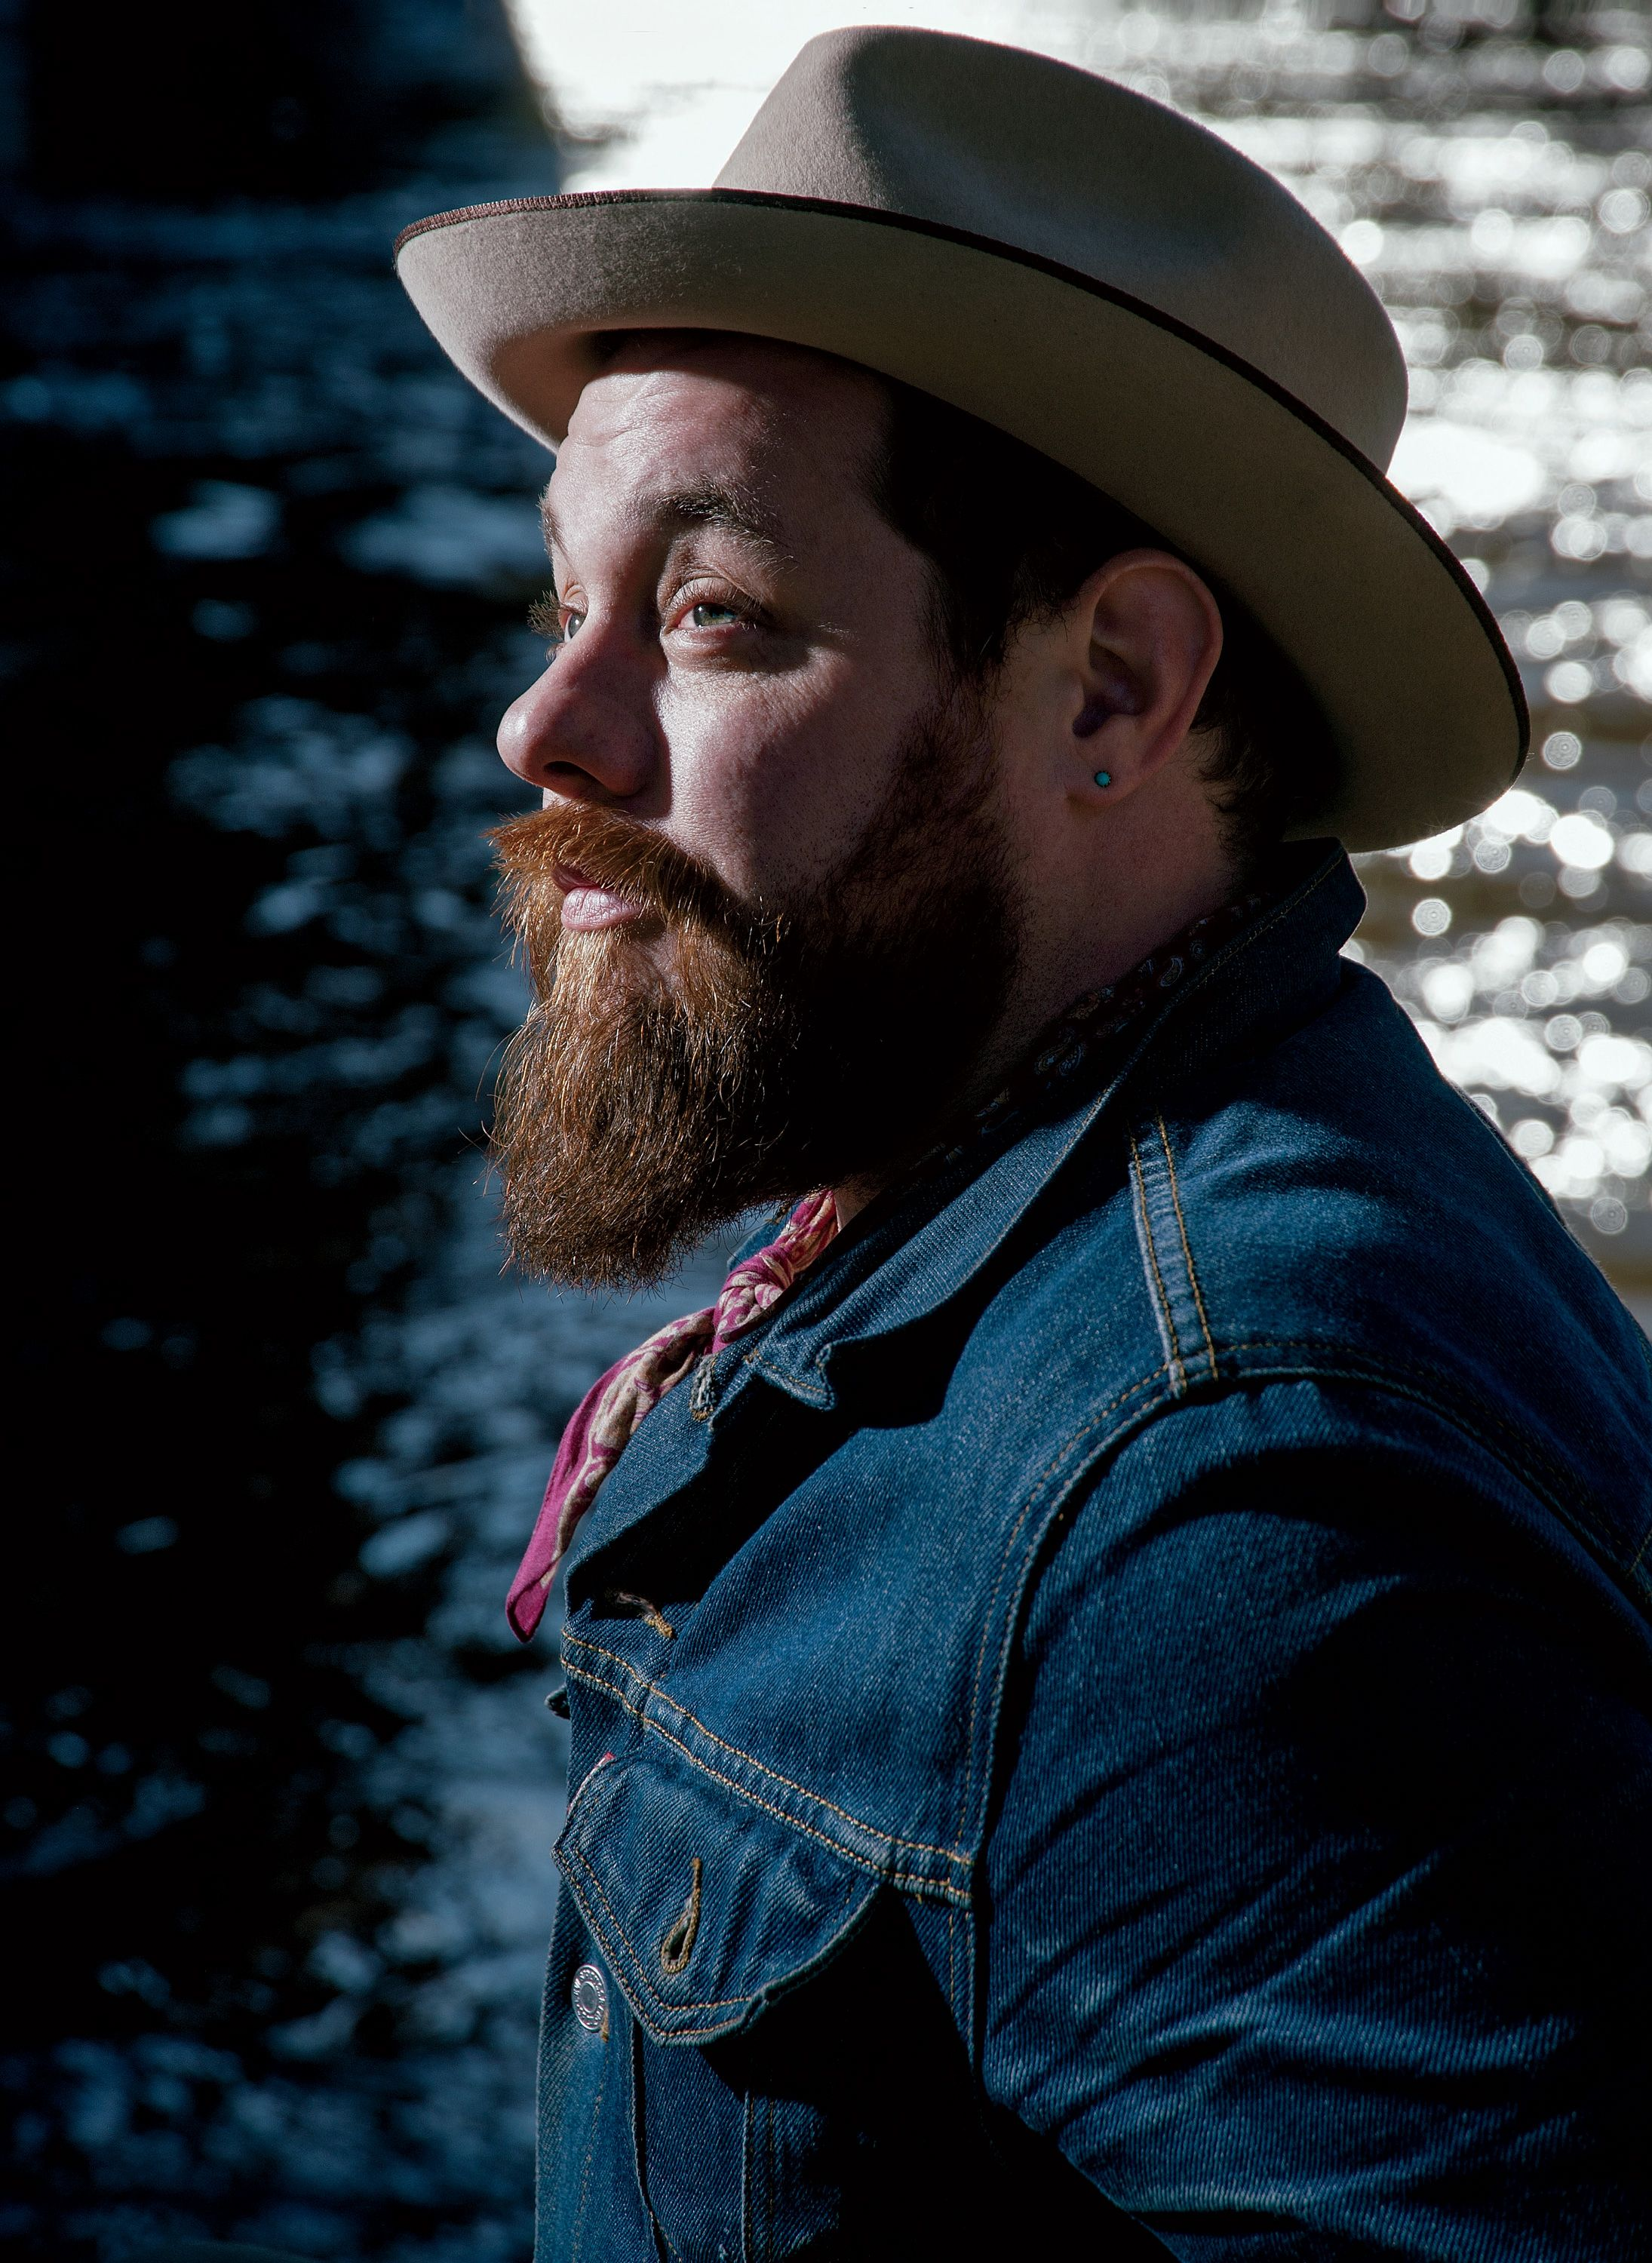 563c1a68c6ce4 Image result for nathaniel rateliff hat